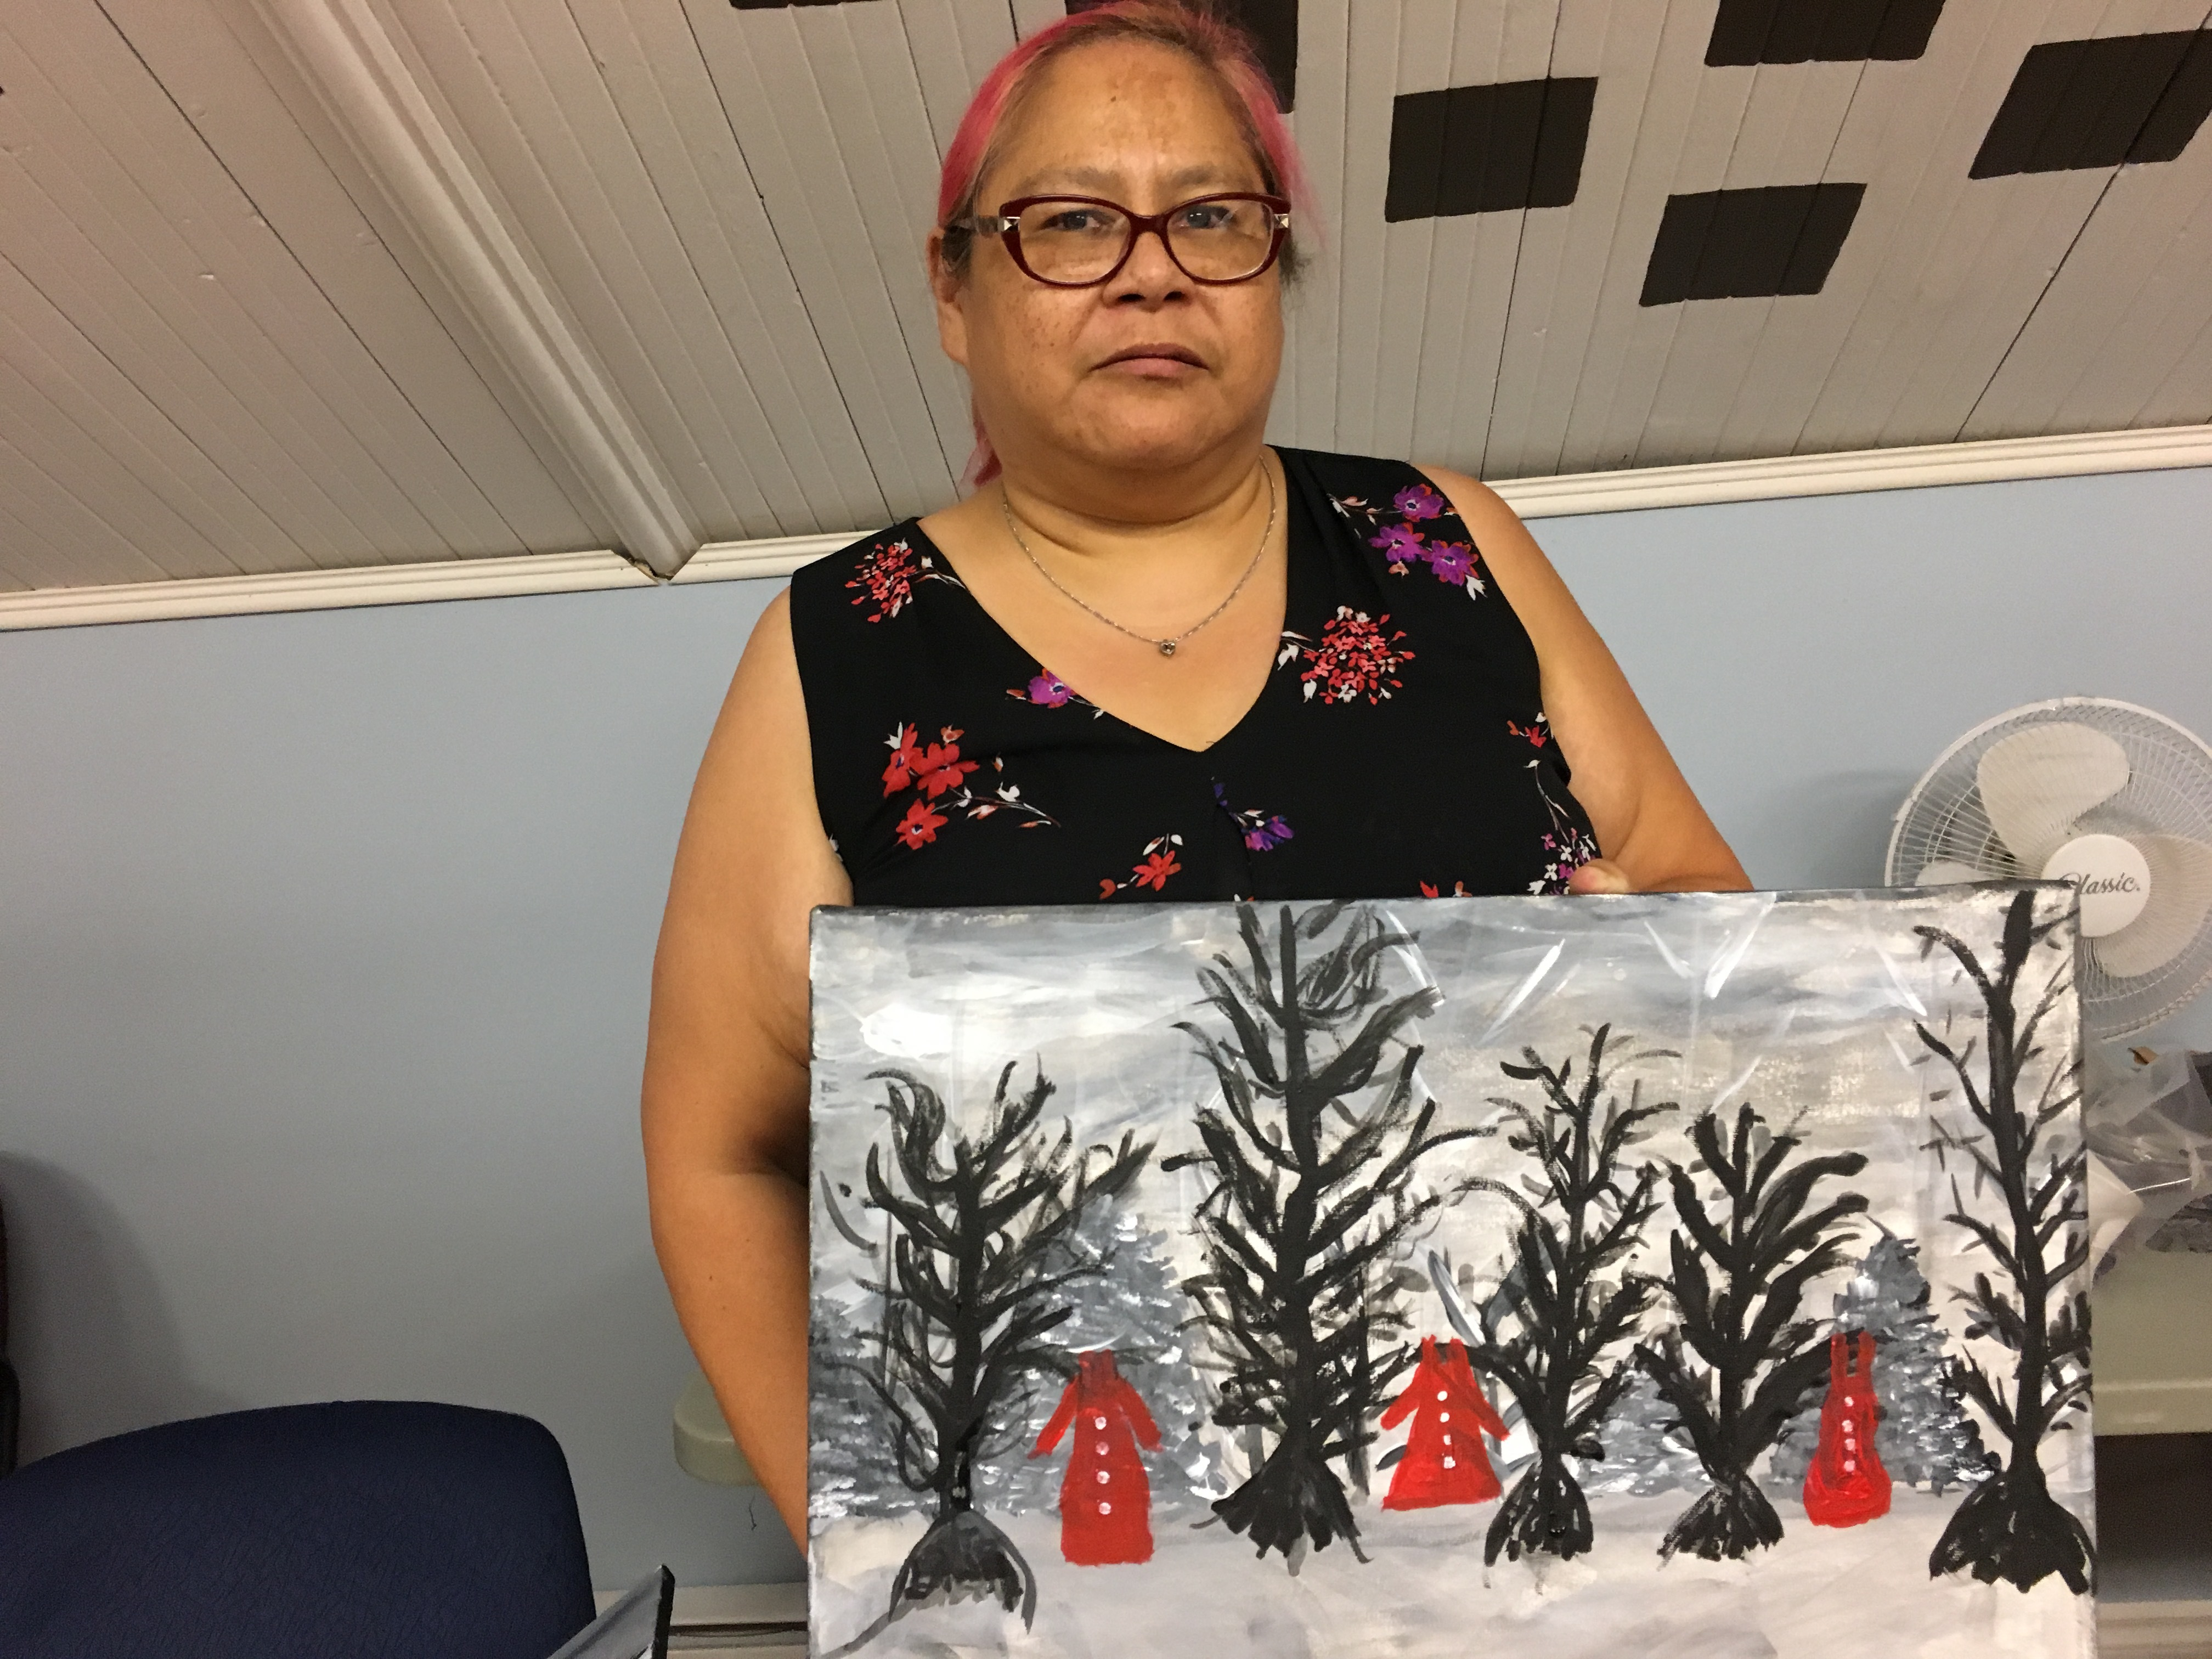 Patsy Gavin stands with her completed painting. (Natalia Goodwin/CBC)